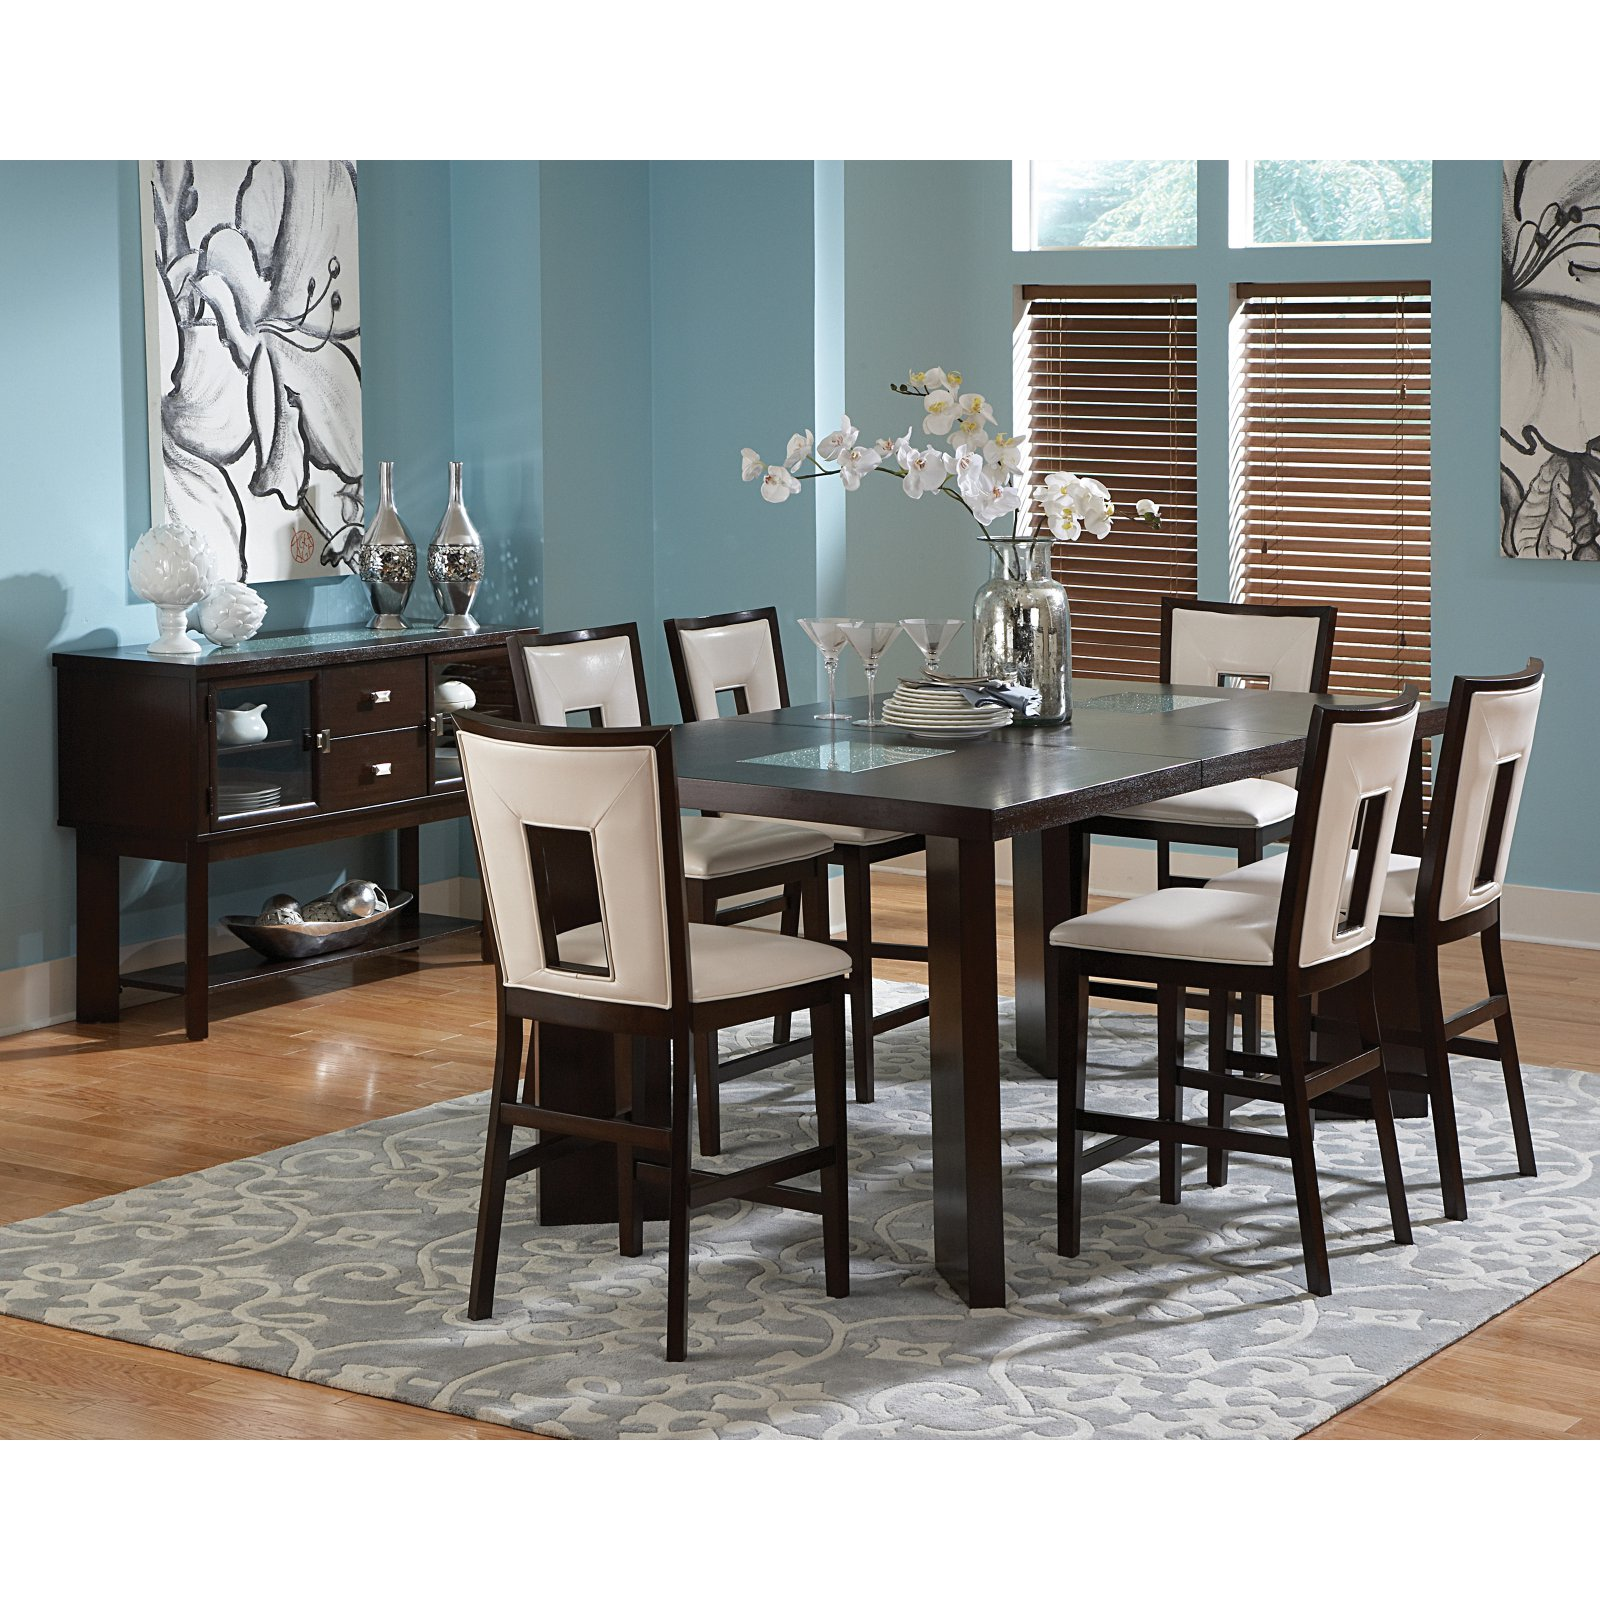 Steve Silver Delano Counter Height Dining Table - Espresso